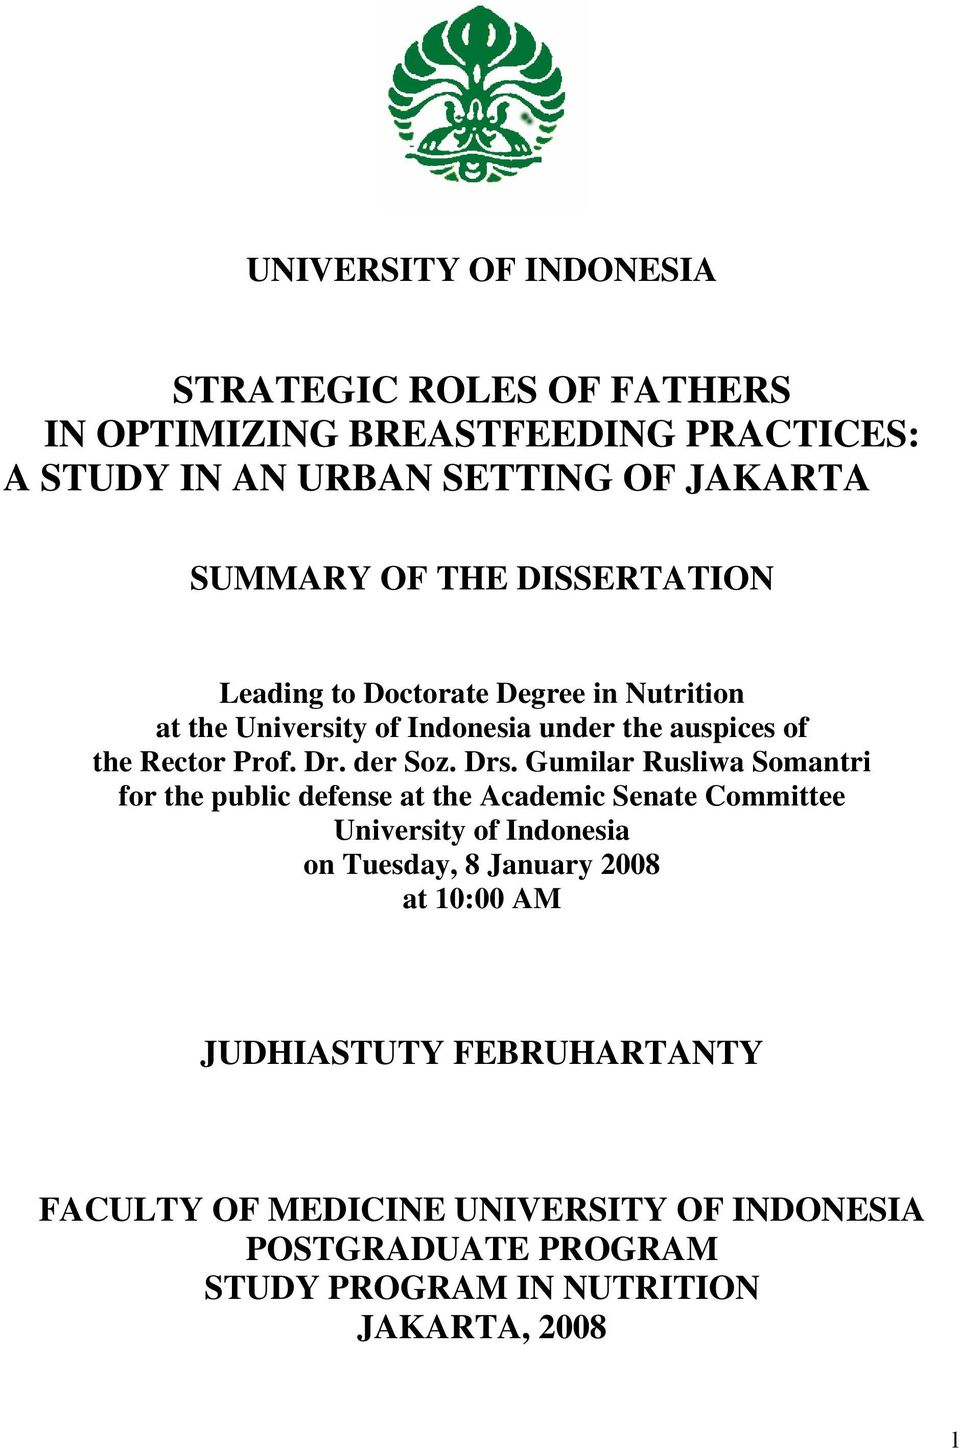 Drs. Gumilar Rusliwa Somantri for the public defense at the Academic Senate Committee University of Indonesia on Tuesday, 8 January 2008 at